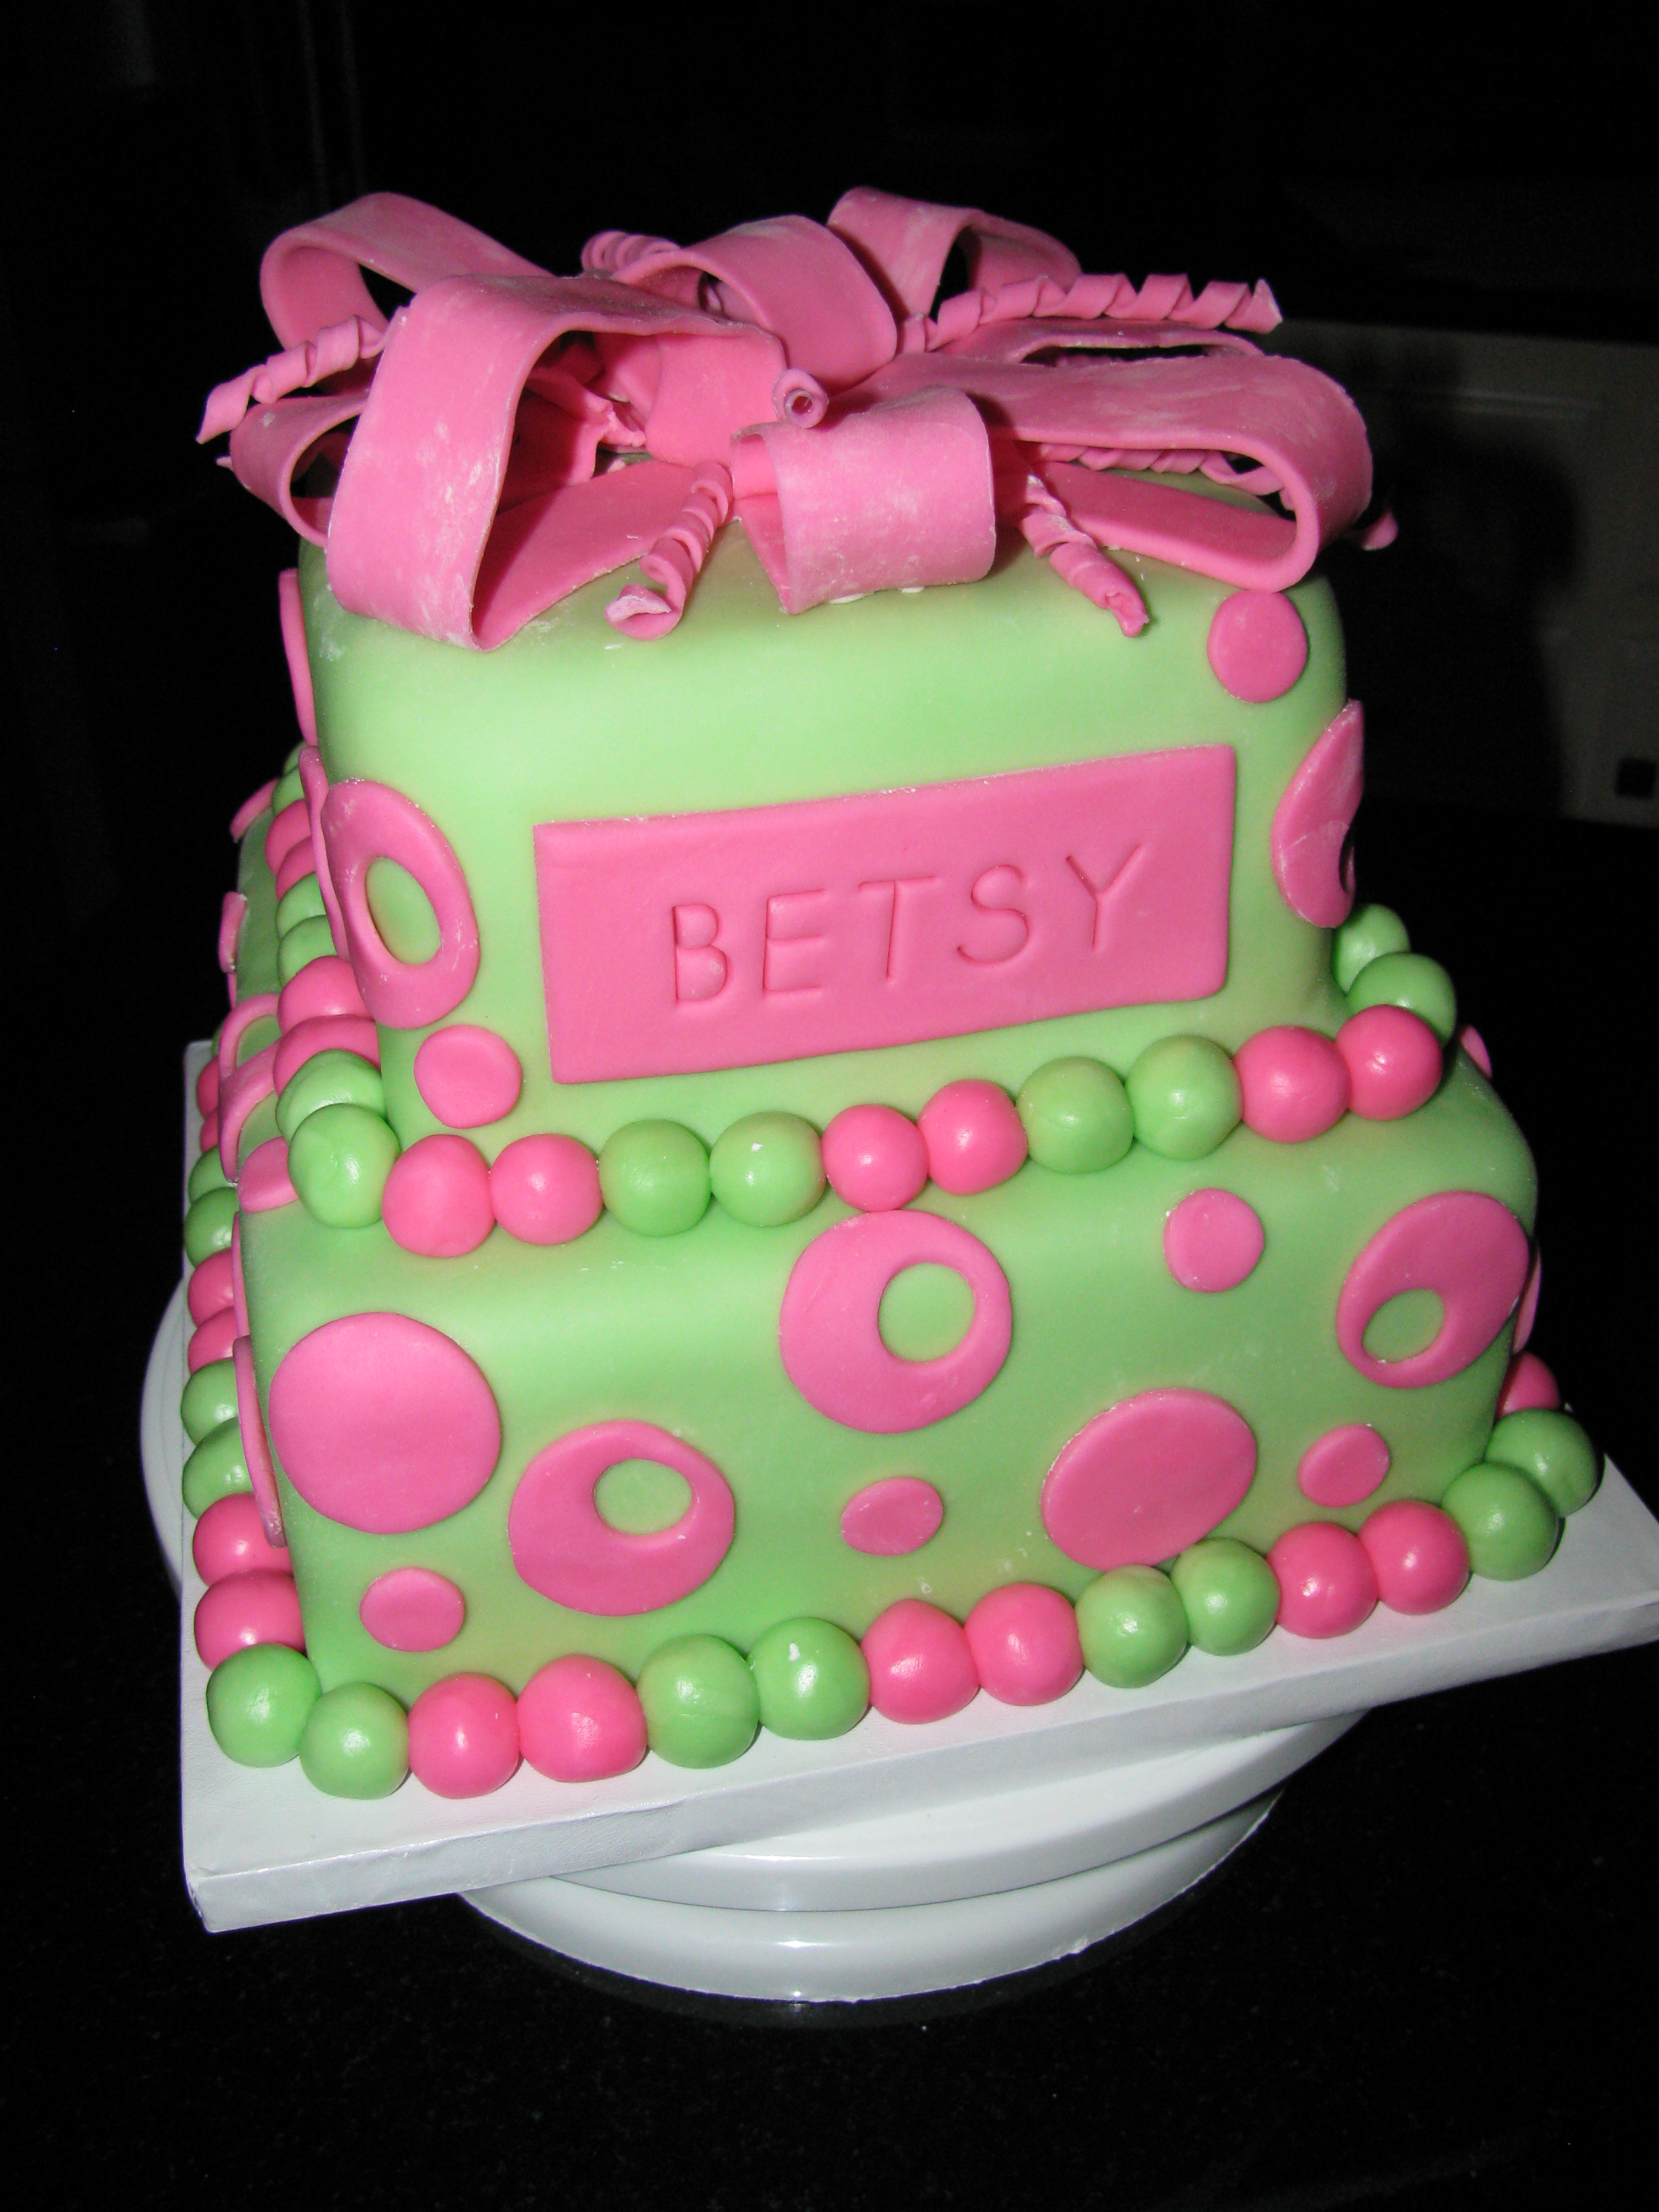 Surprising Easy Birthday Cake Ideas For Teenage Girl The Cake Boutique Funny Birthday Cards Online Fluifree Goldxyz